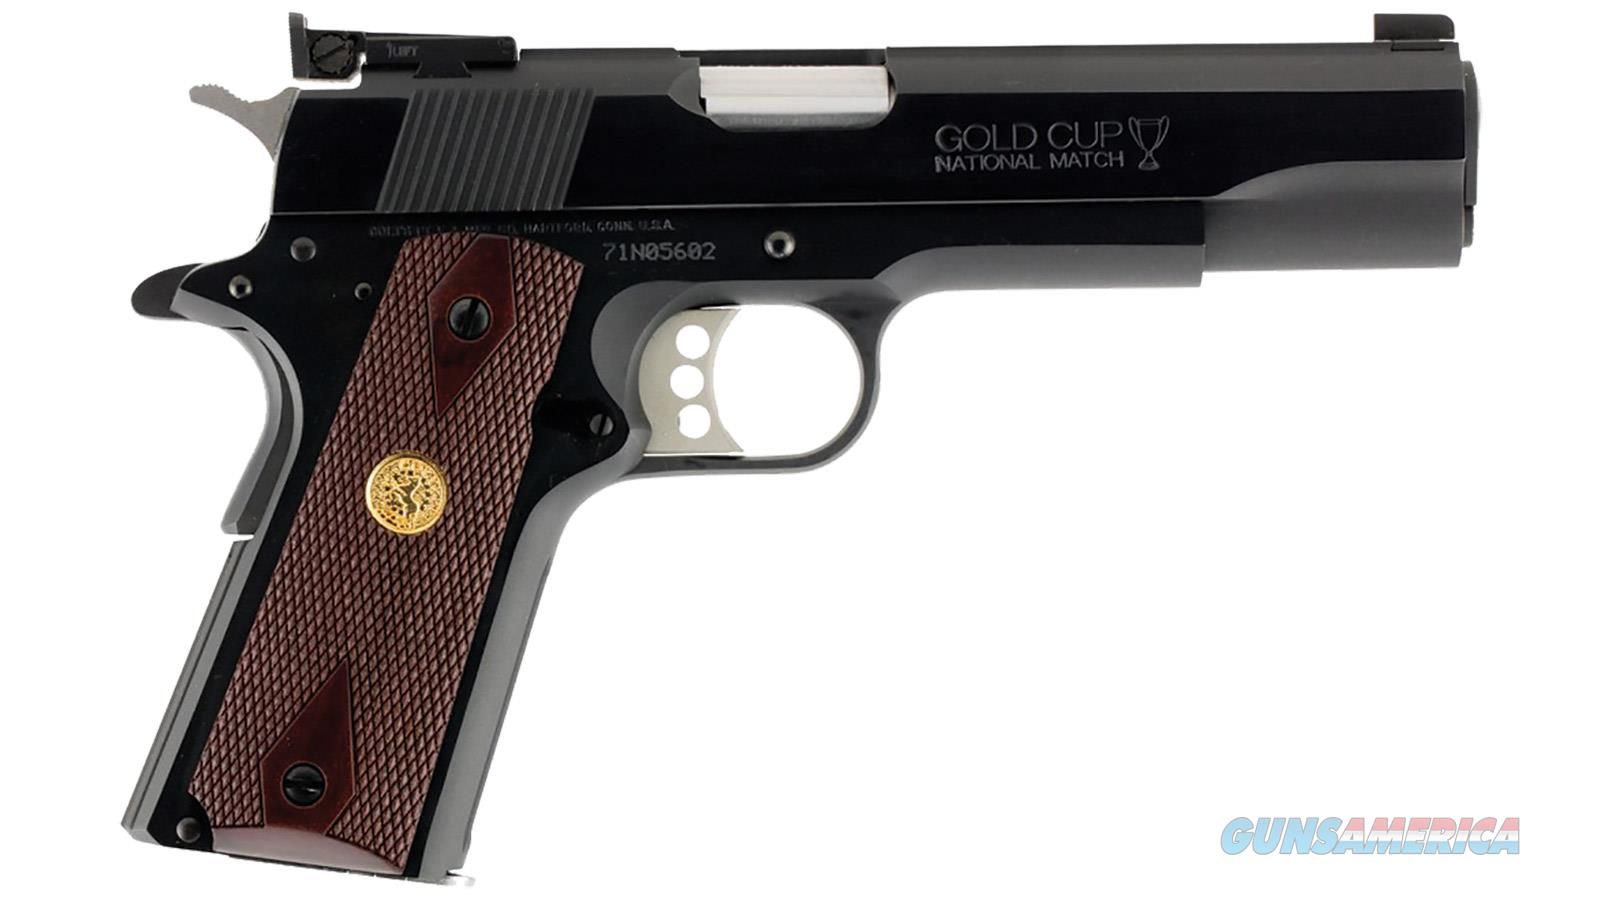 Colt Gold Cup National Match 1911 9mm 70 Series O5872A1 *NEW*  Guns > Pistols > Colt Automatic Pistols (1911 & Var)